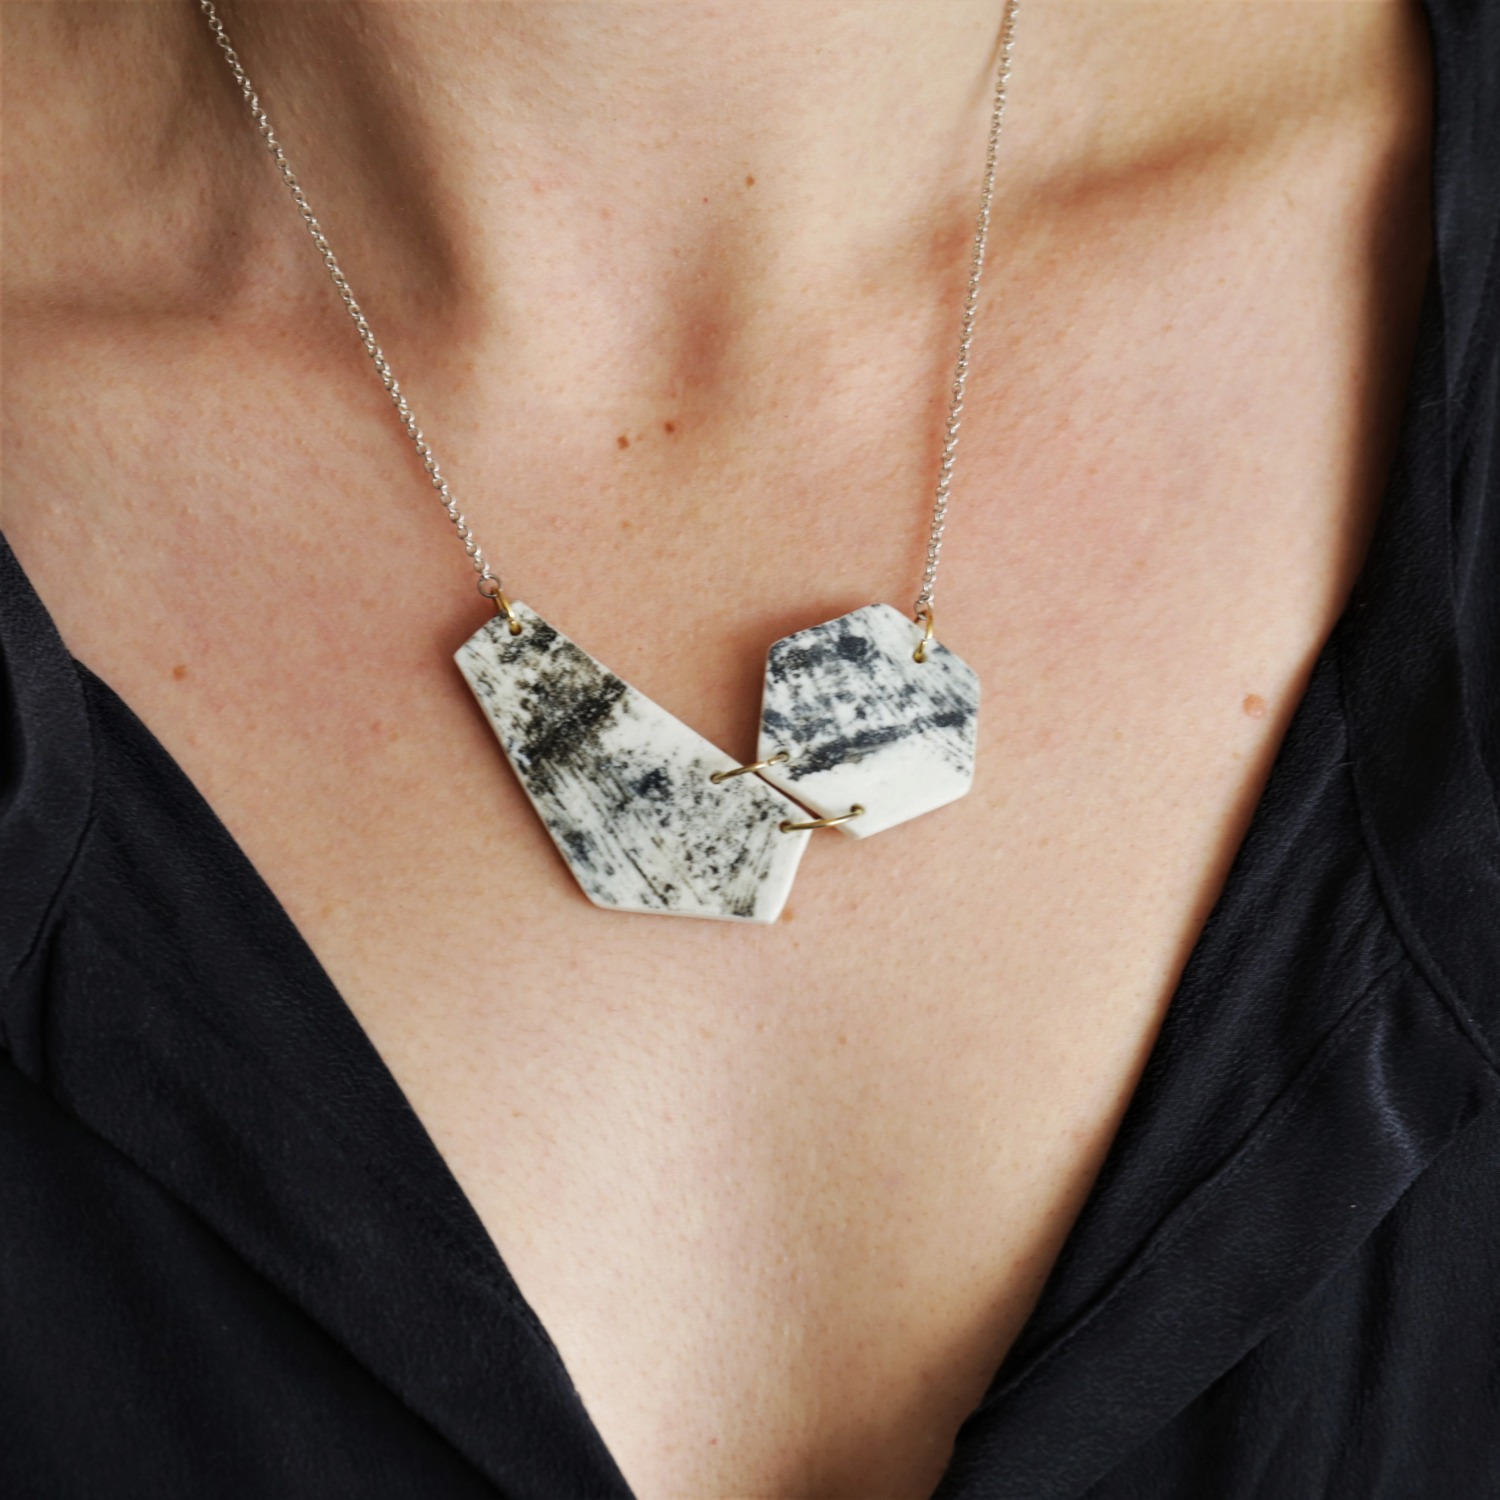 Porcelain and silver linked abstract necklace by Clay Shed Studio